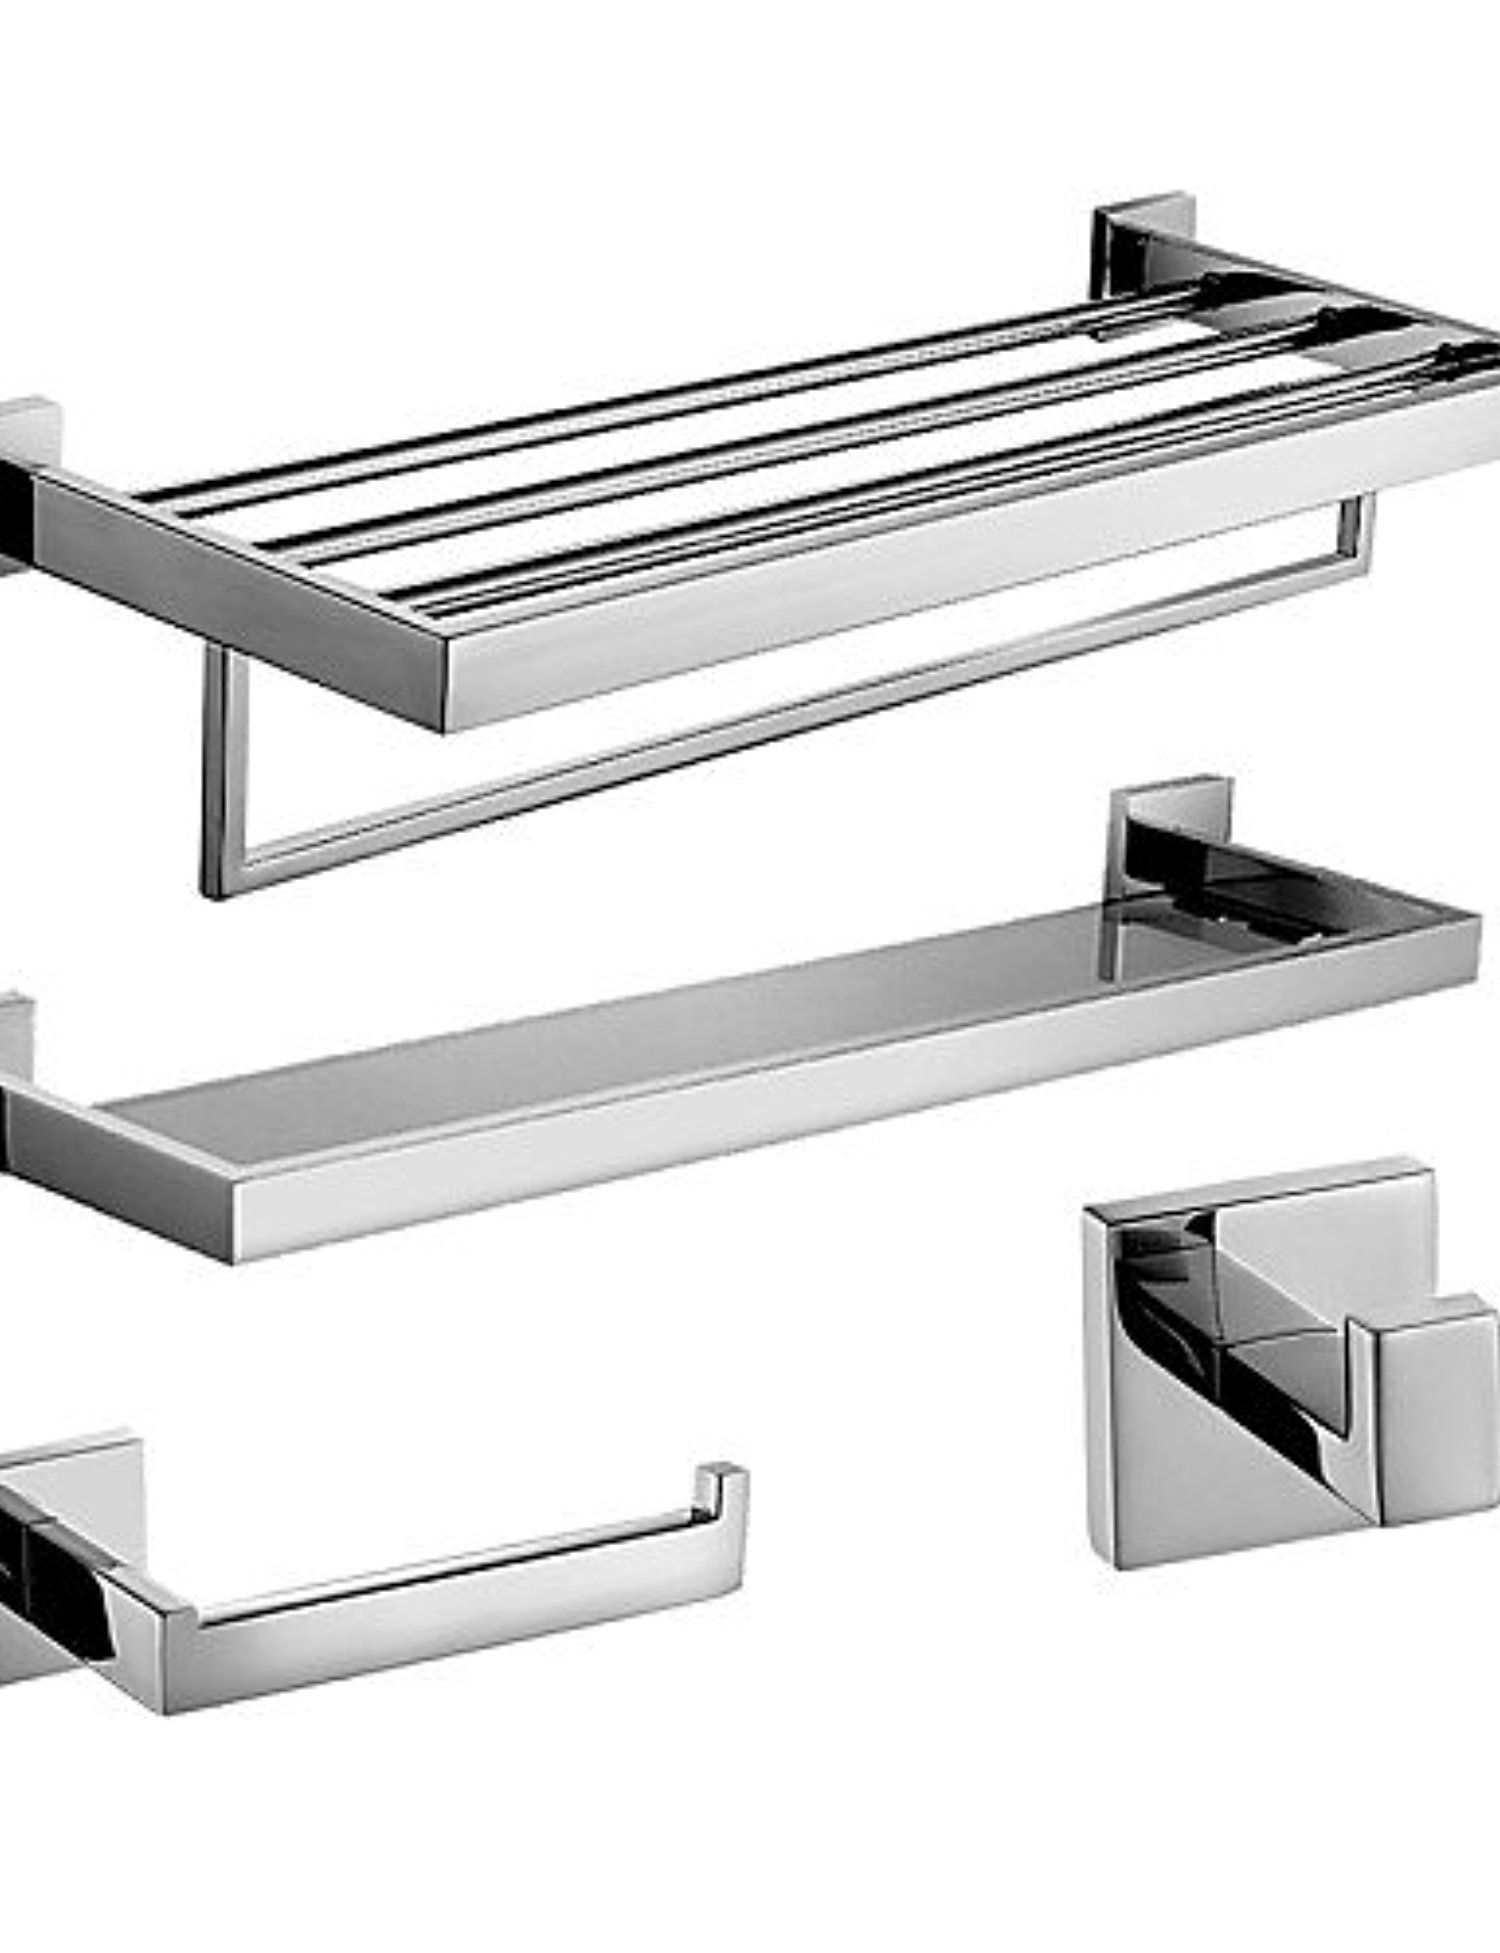 CNLG- Polish Stainless Steel Bath Accessories Set with Glass Shelf ...